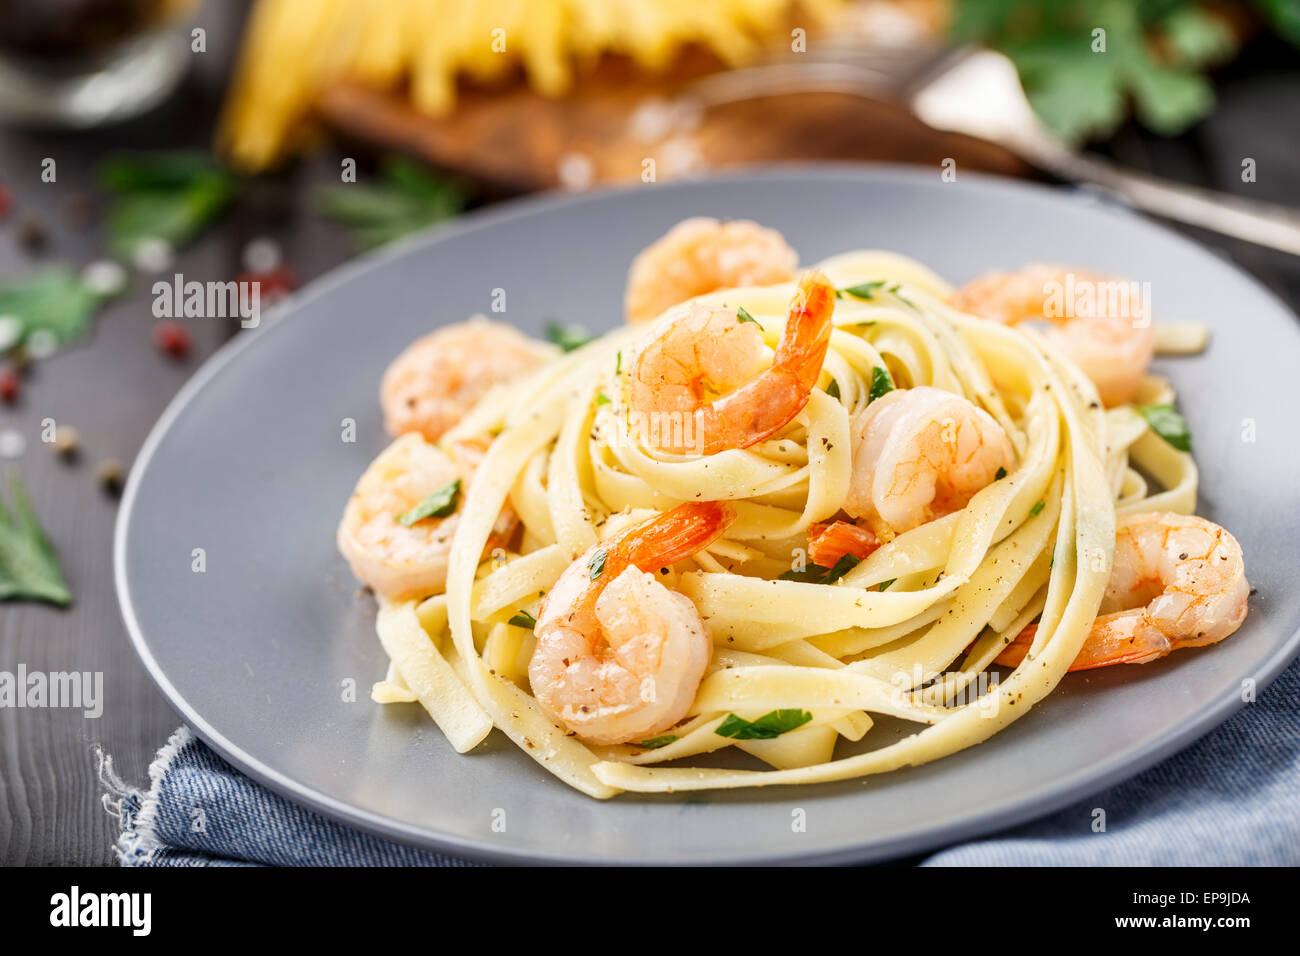 Tagliatelle with shrimps and parsley on a plate - Stock Image